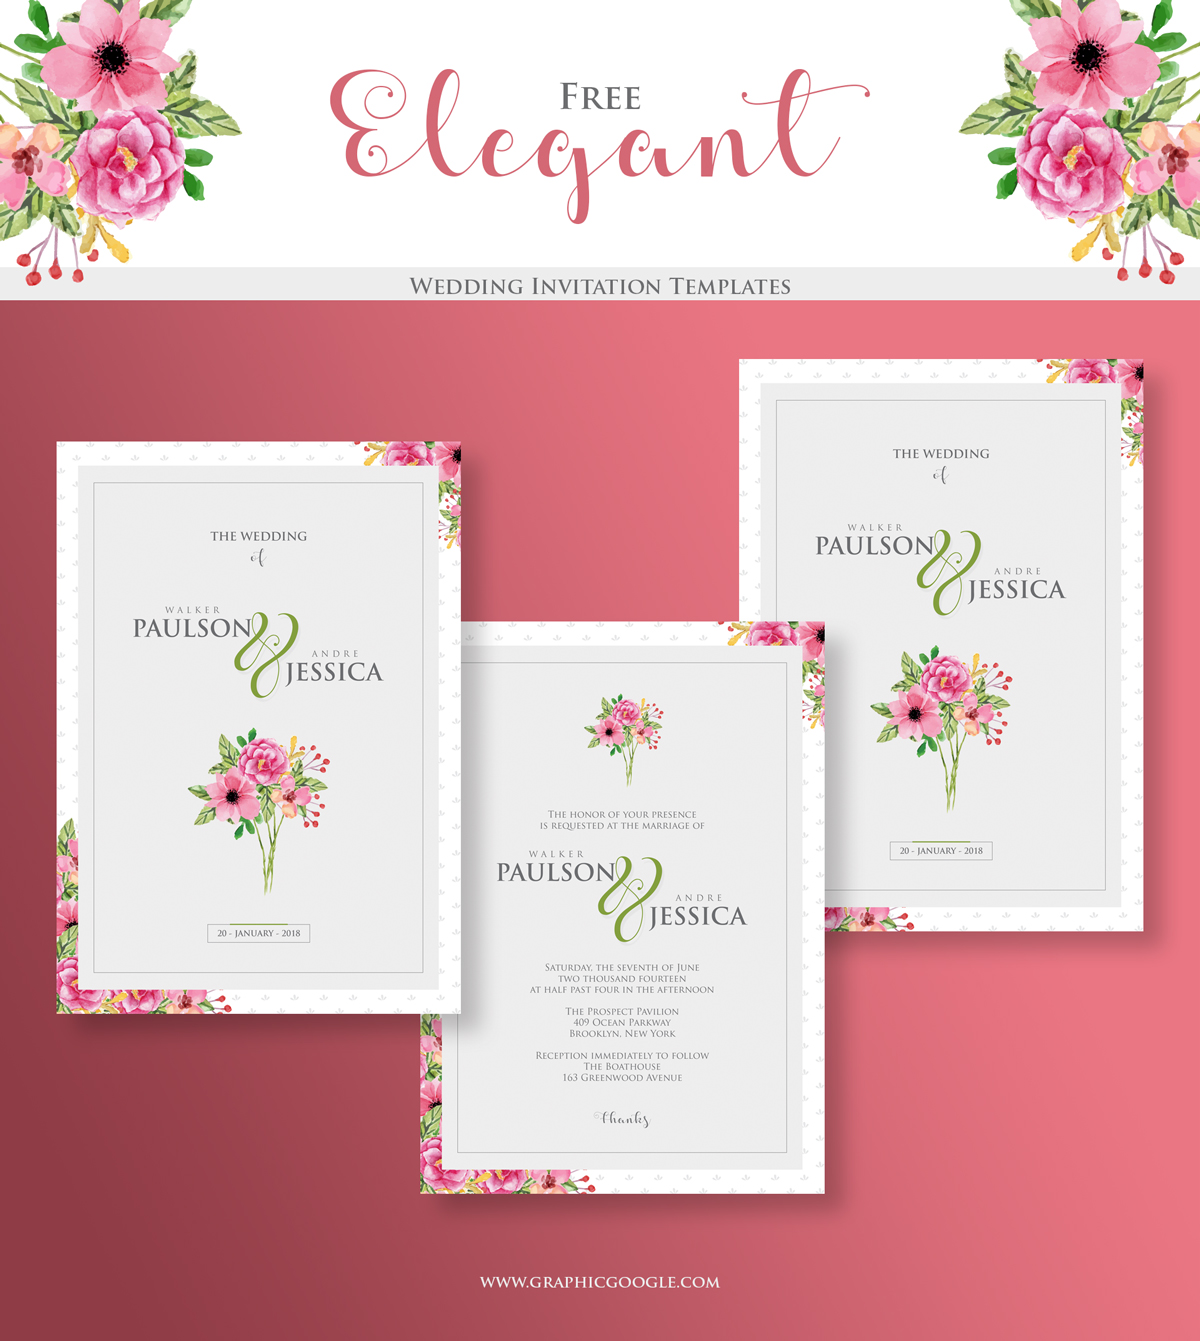 Elegant invitation templates free for Free wedding templates